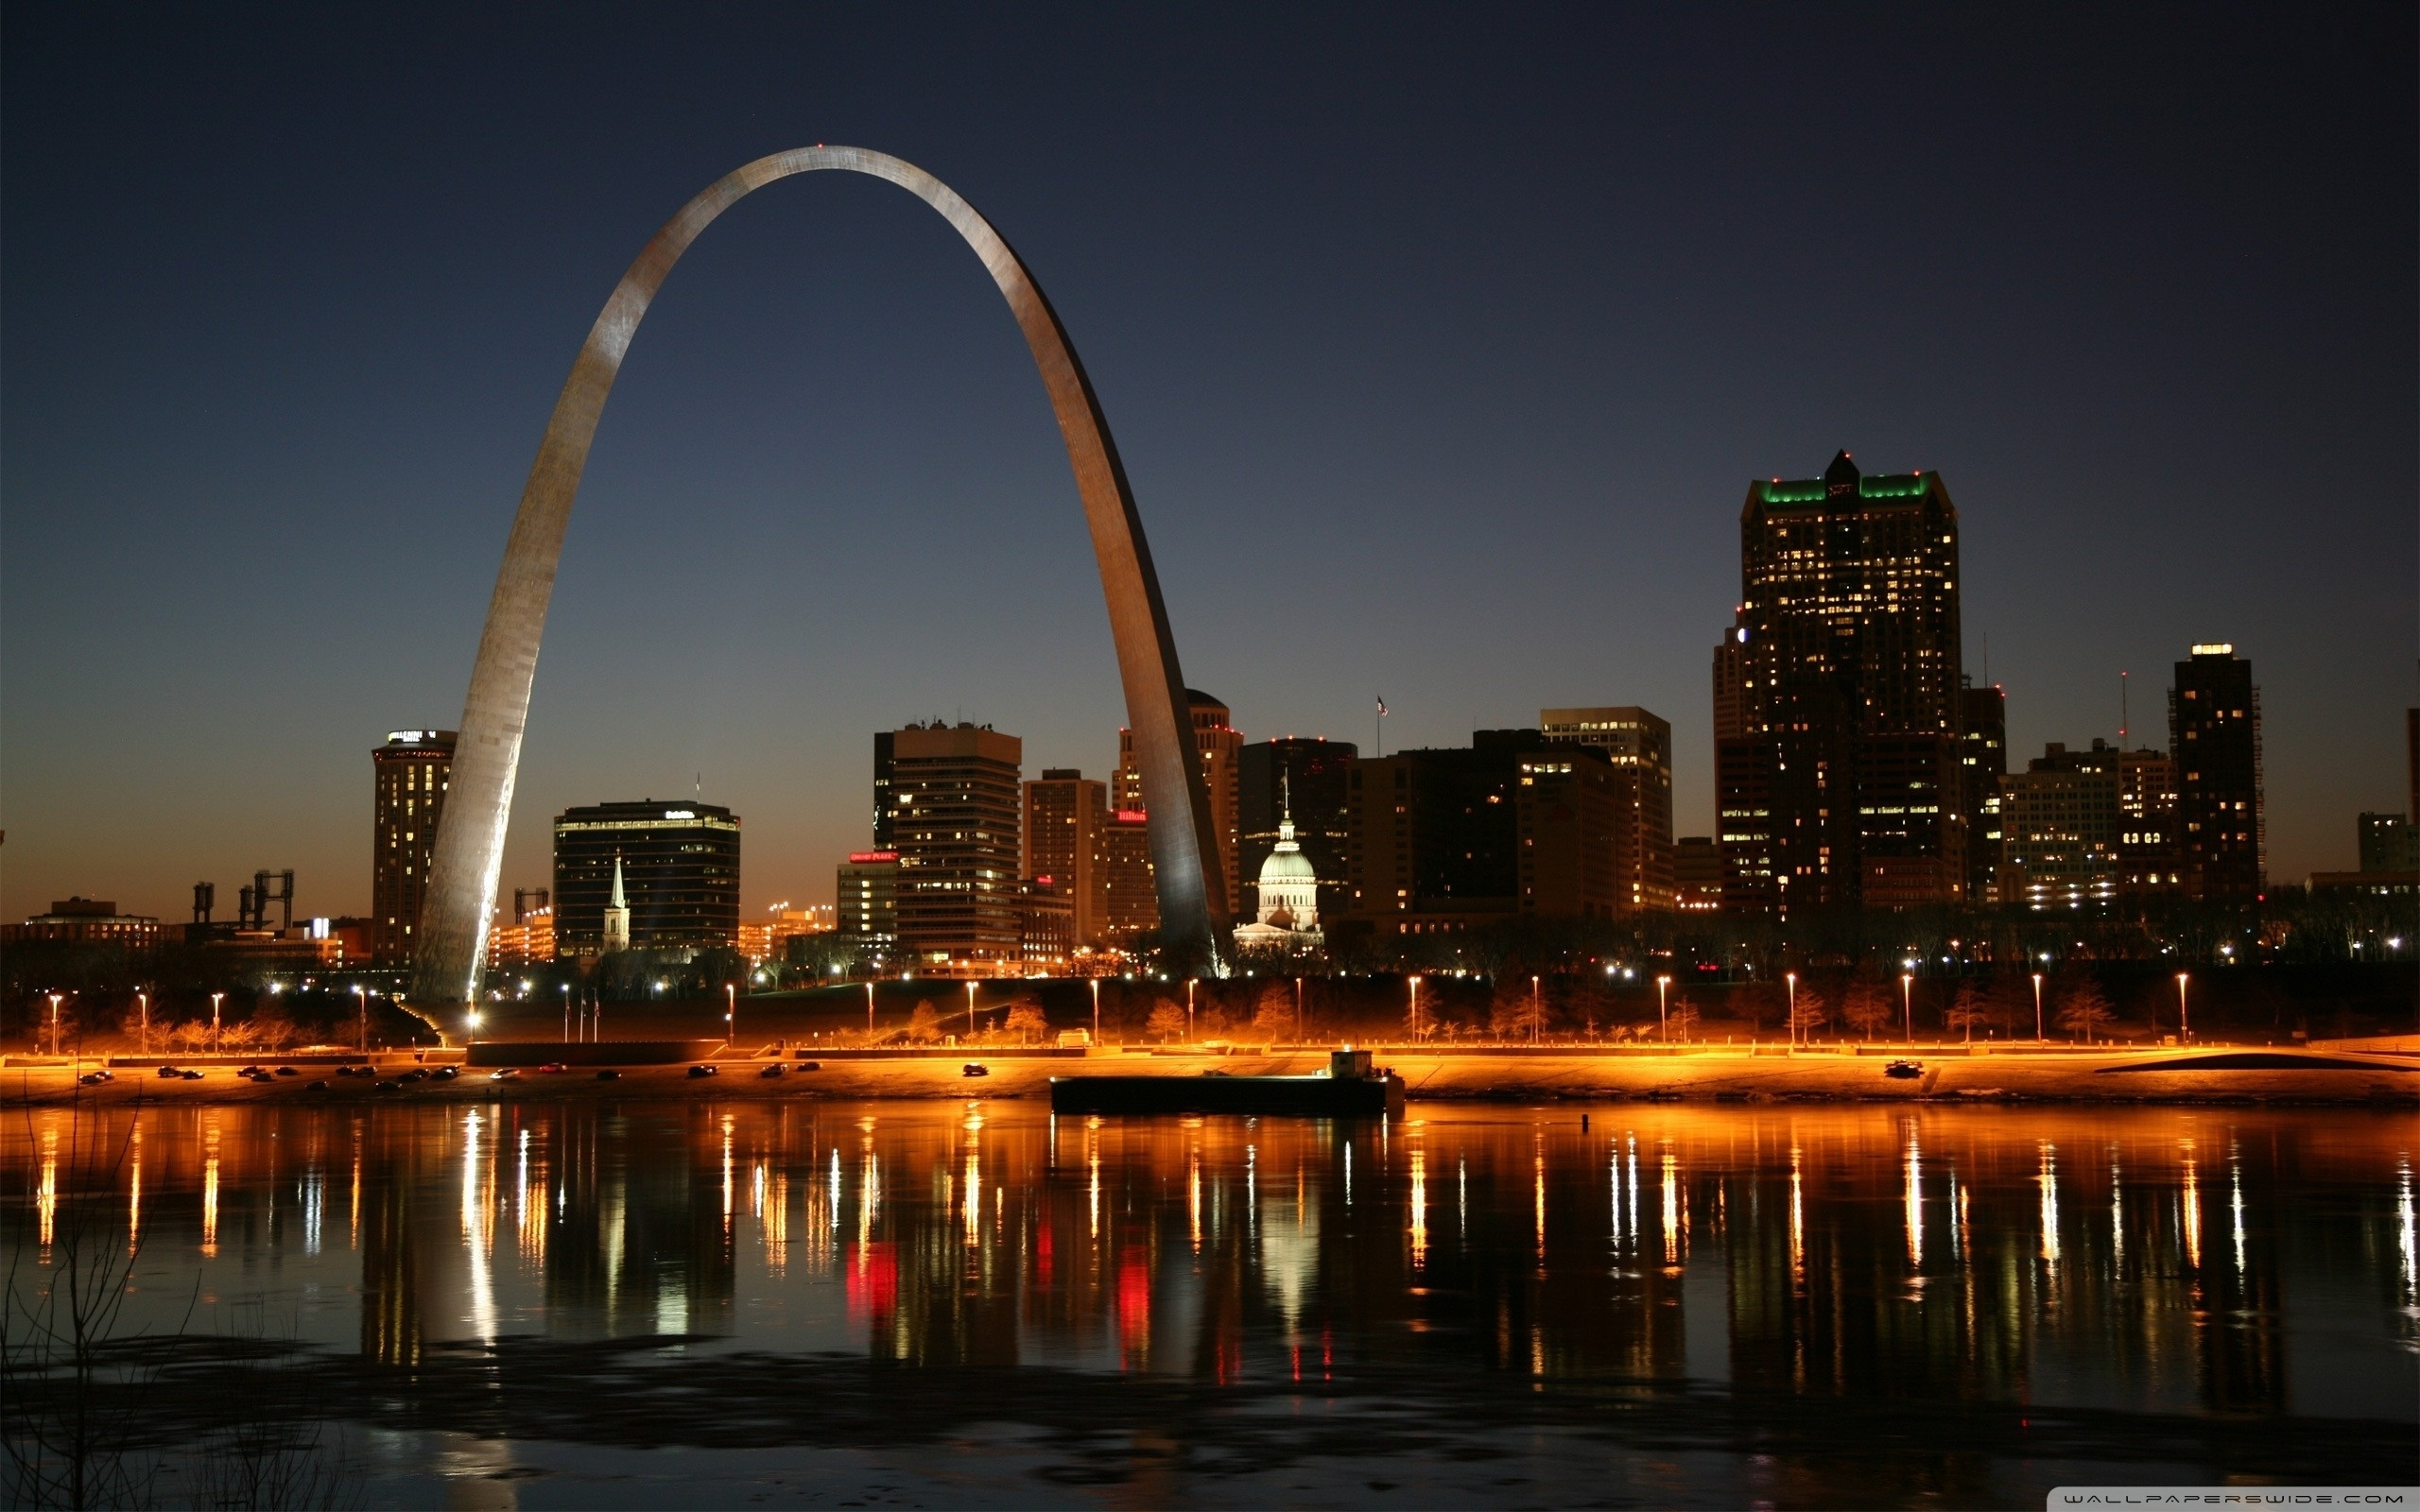 st louis, missouri ❤ 4k hd desktop wallpaper for 4k ultra hd tv